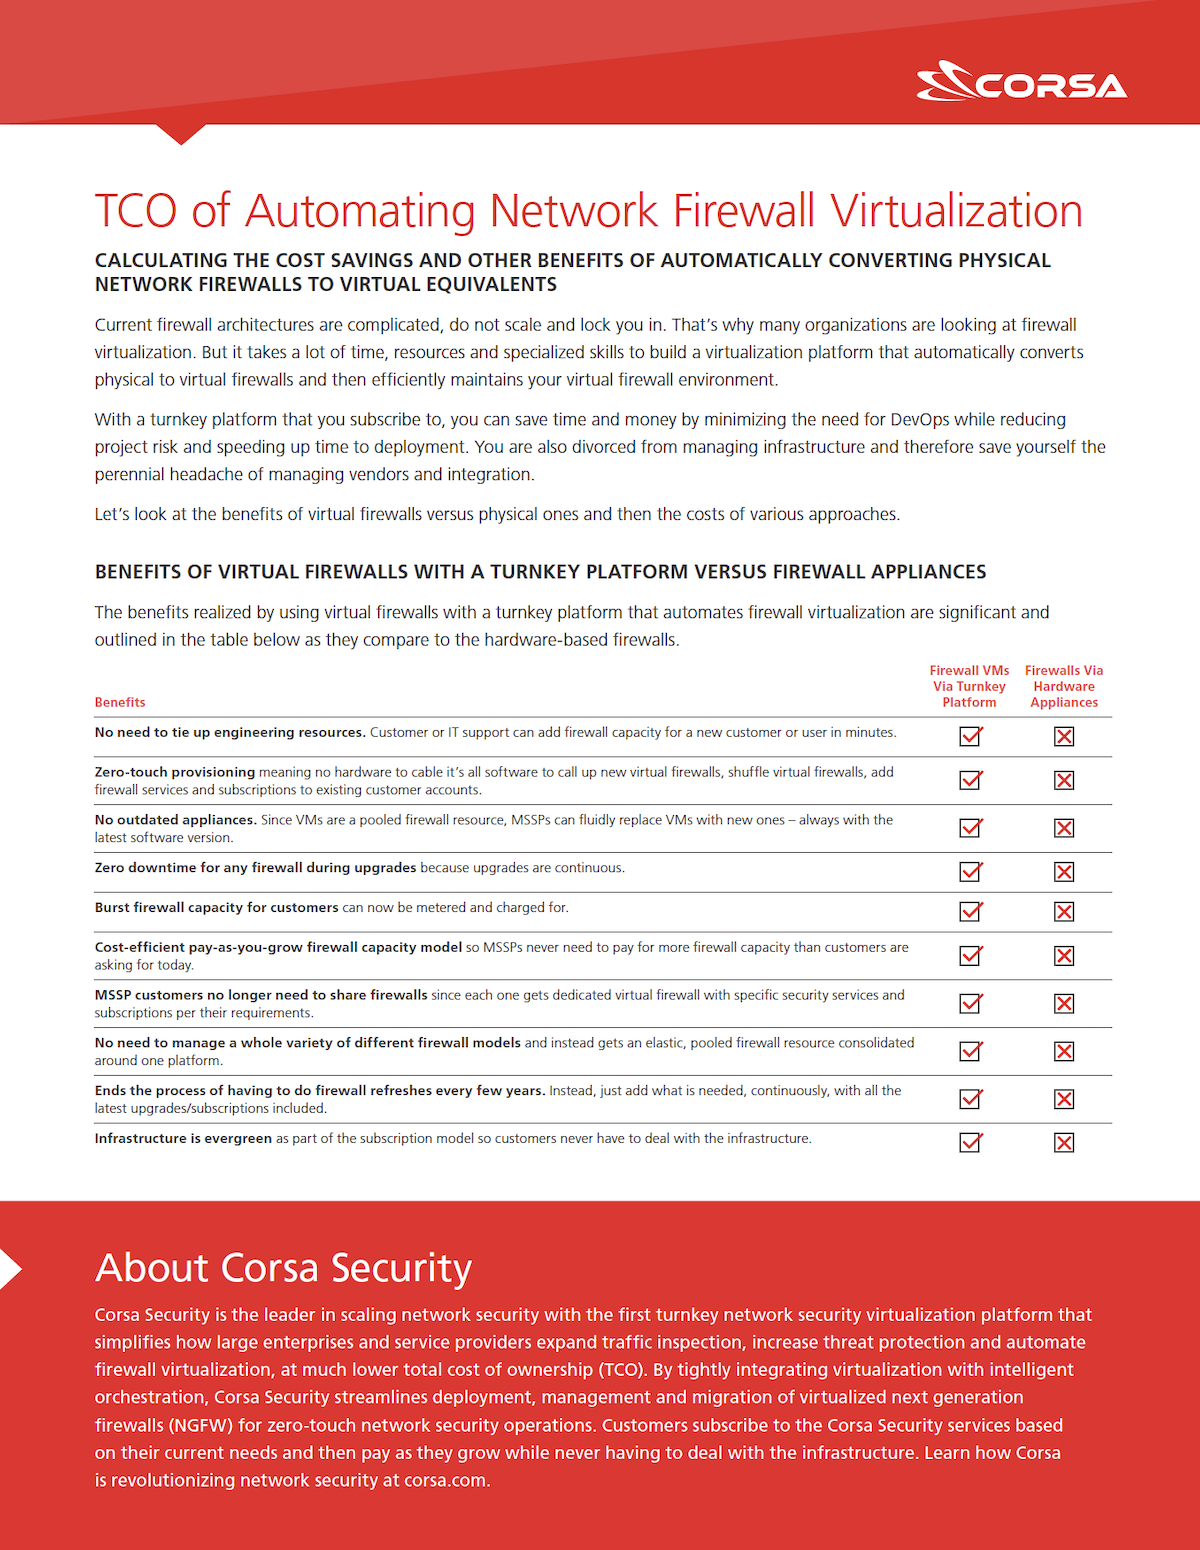 Corsa_TS-TCO_of_Automating_Network_Firewall _Virtualization-cover_big